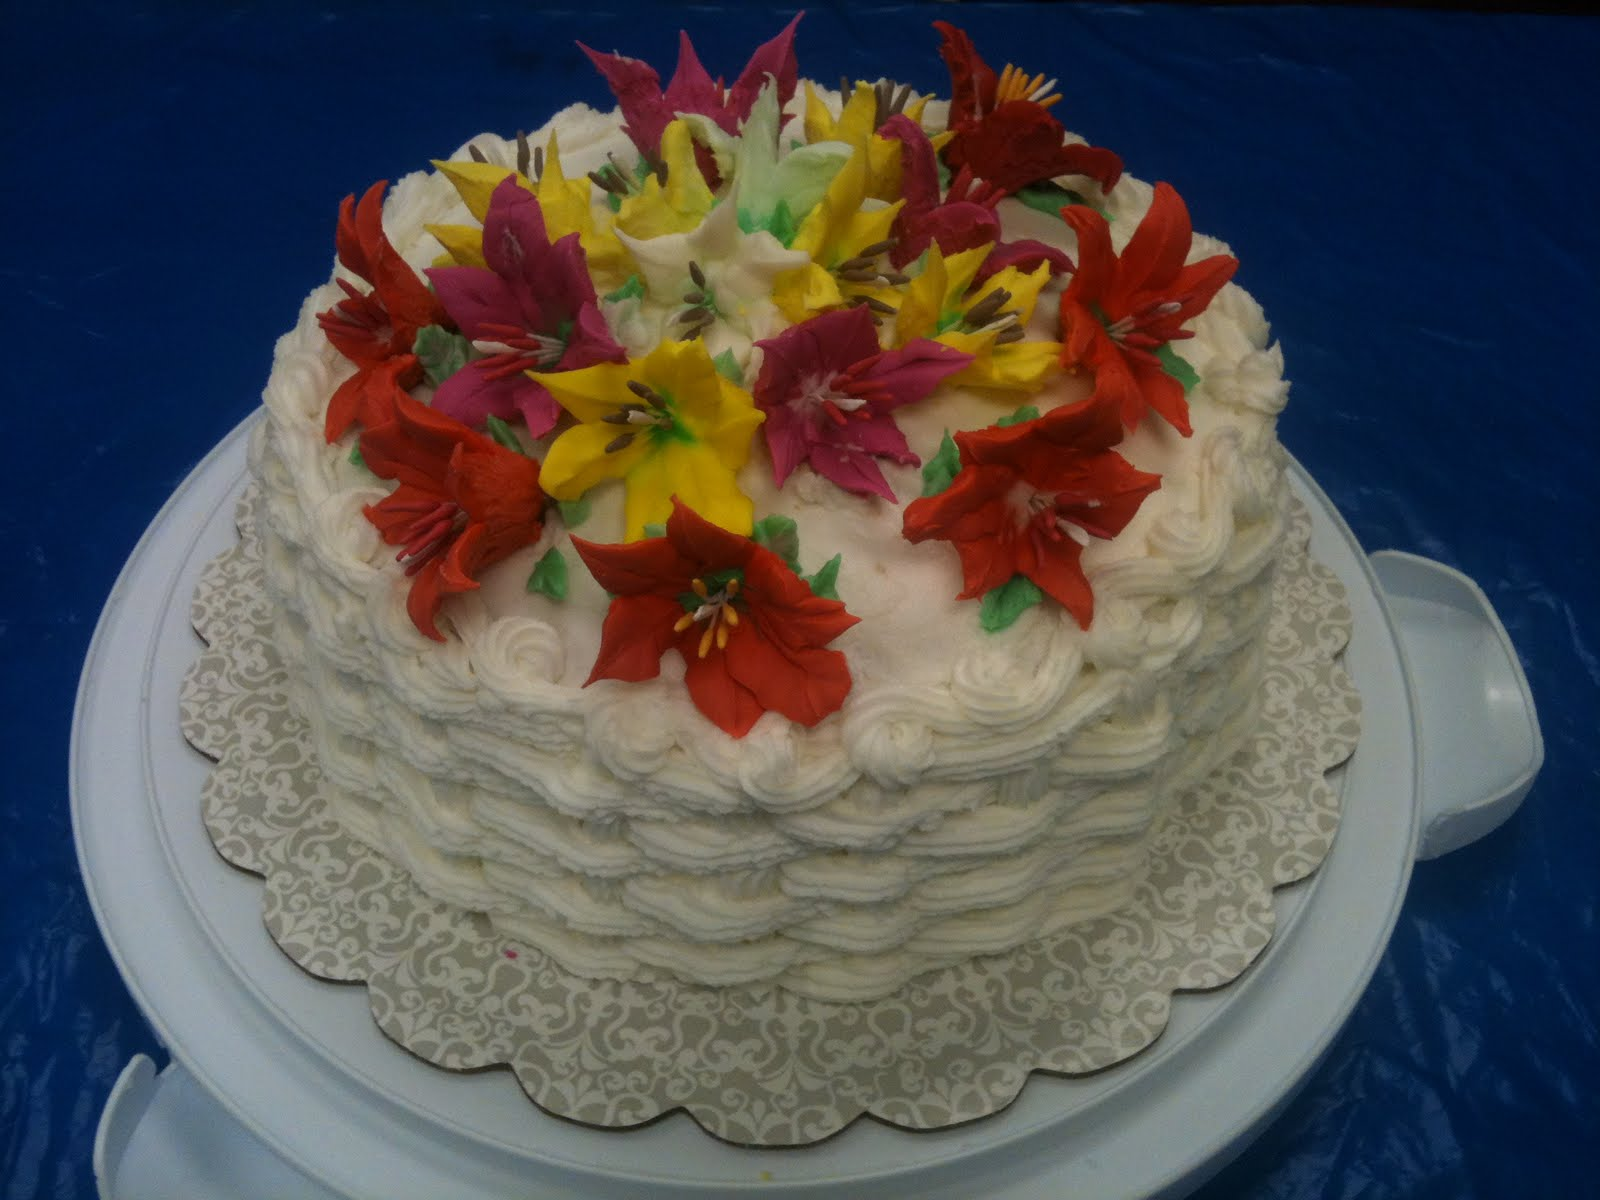 Cake Images Sonia : Cake Decorating by Sonia: November 2011 - Course 2 ...